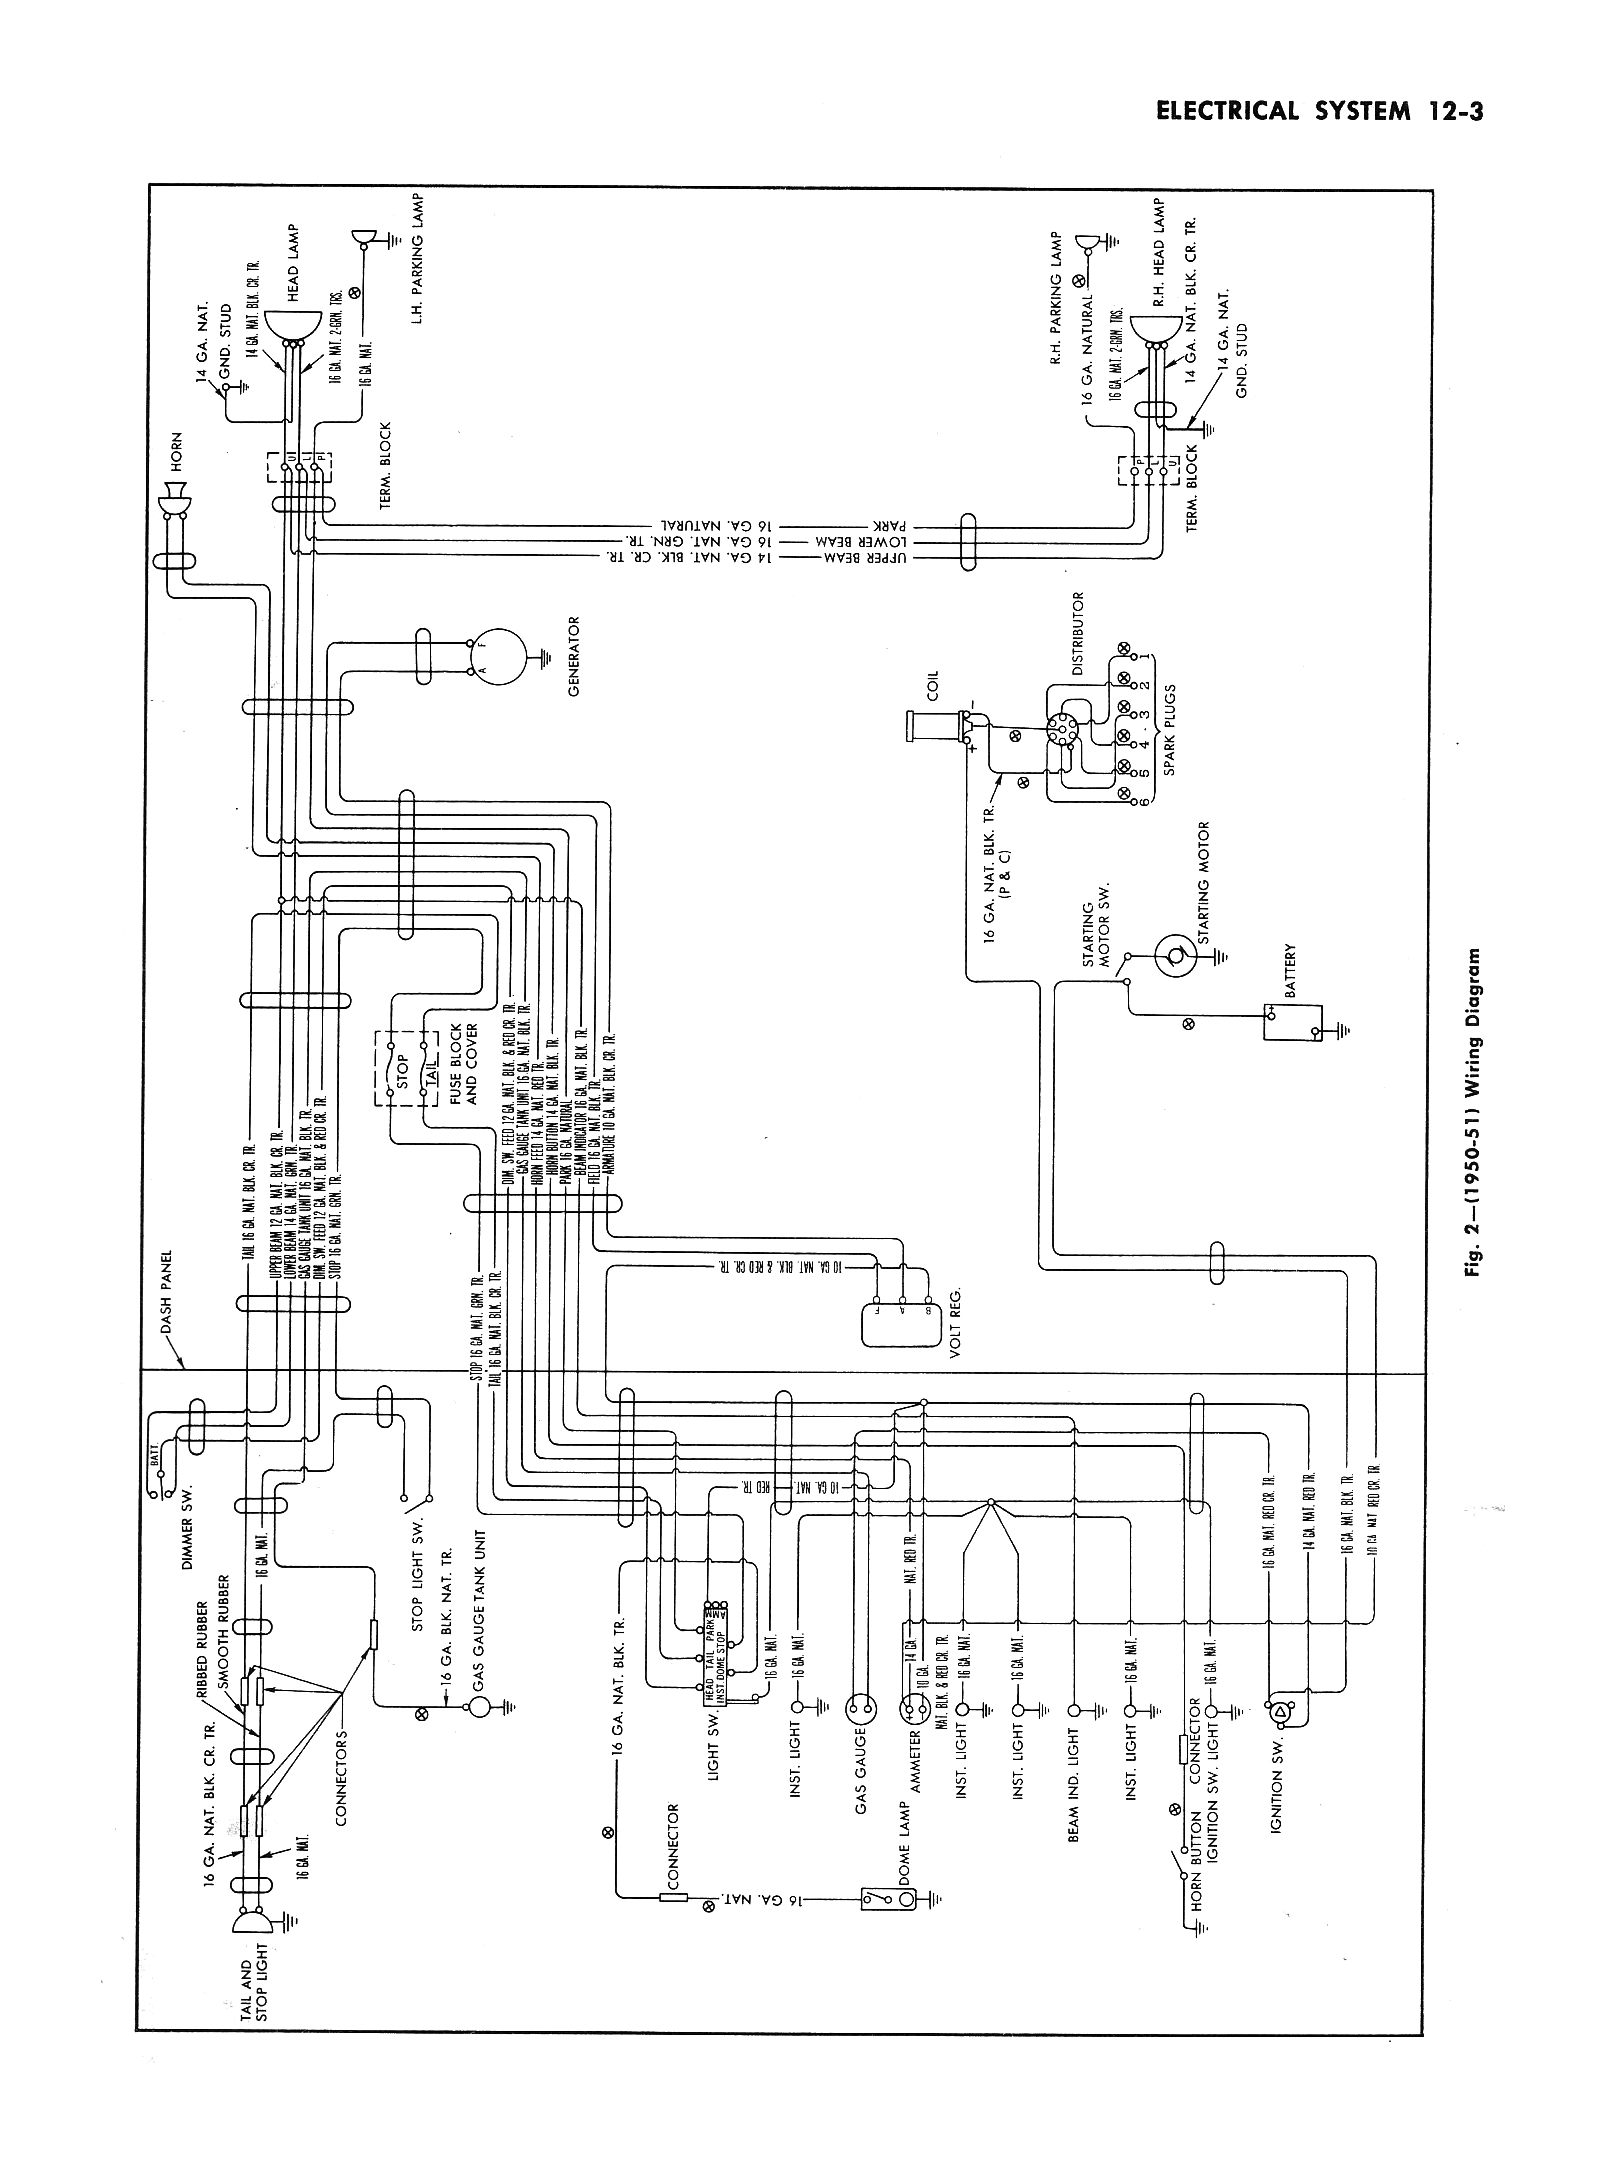 hight resolution of 1970 cadillac wiring diagram wiring library rh 91 kandelhof restaurant de 1962 cadillac wiring cadillac deville